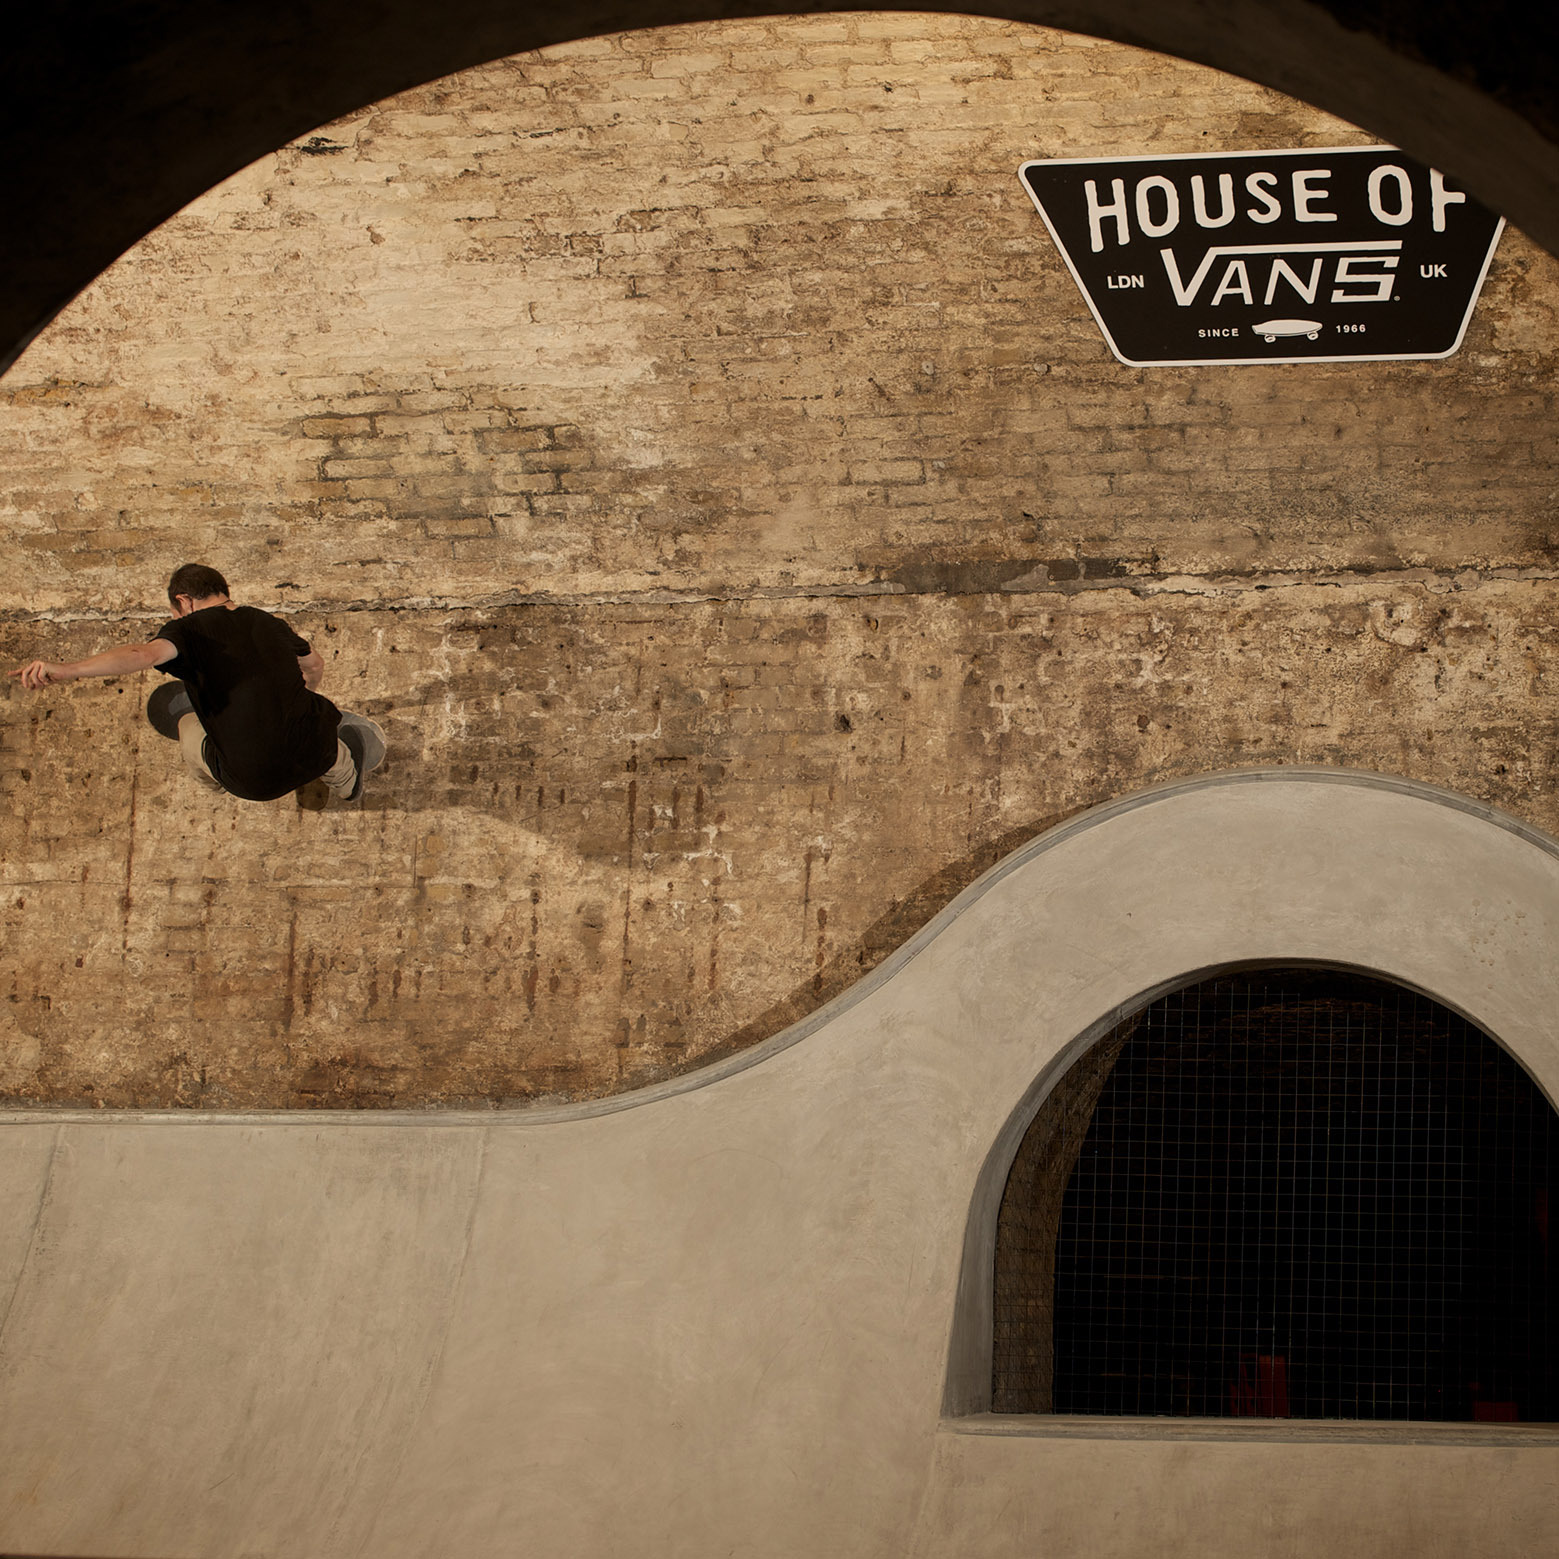 54b06738e58ece528e000053_house-of-vans-london-tim-greatrex_house_of_vans_london_skatepark_-2-